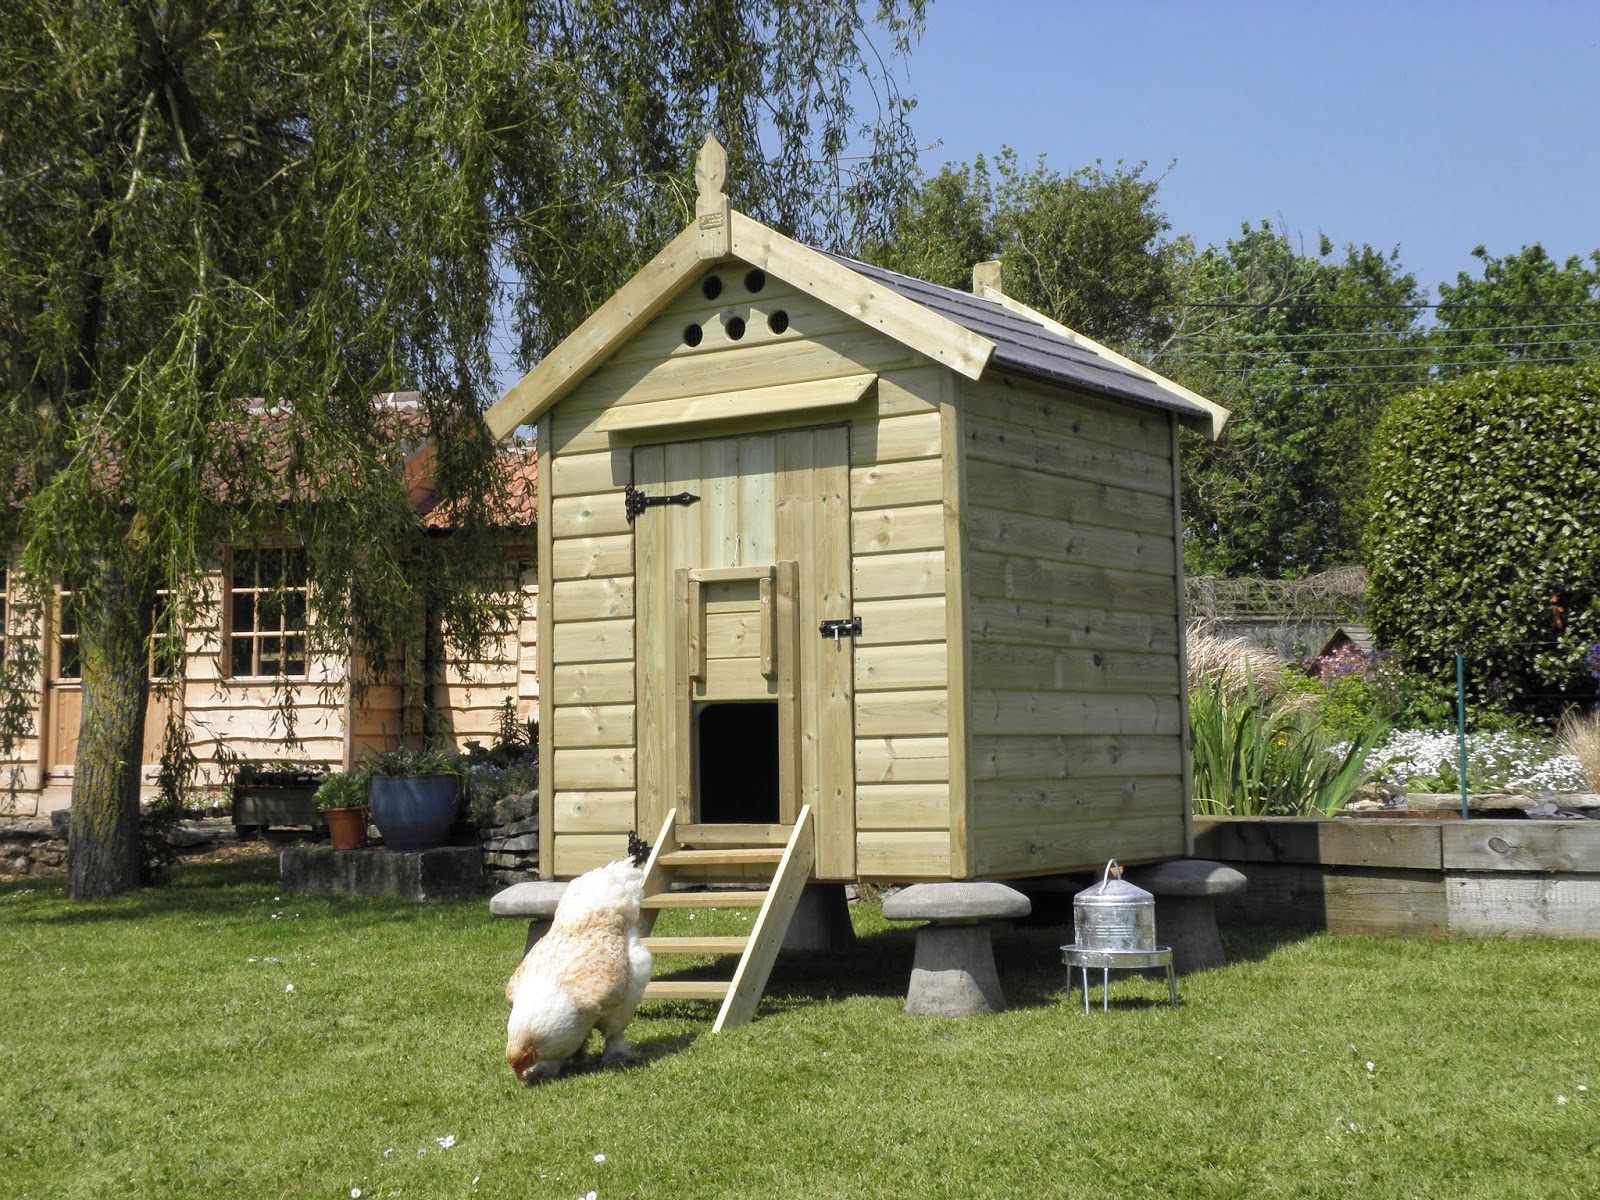 flyte so fancy guaranteed quality chicken houses from